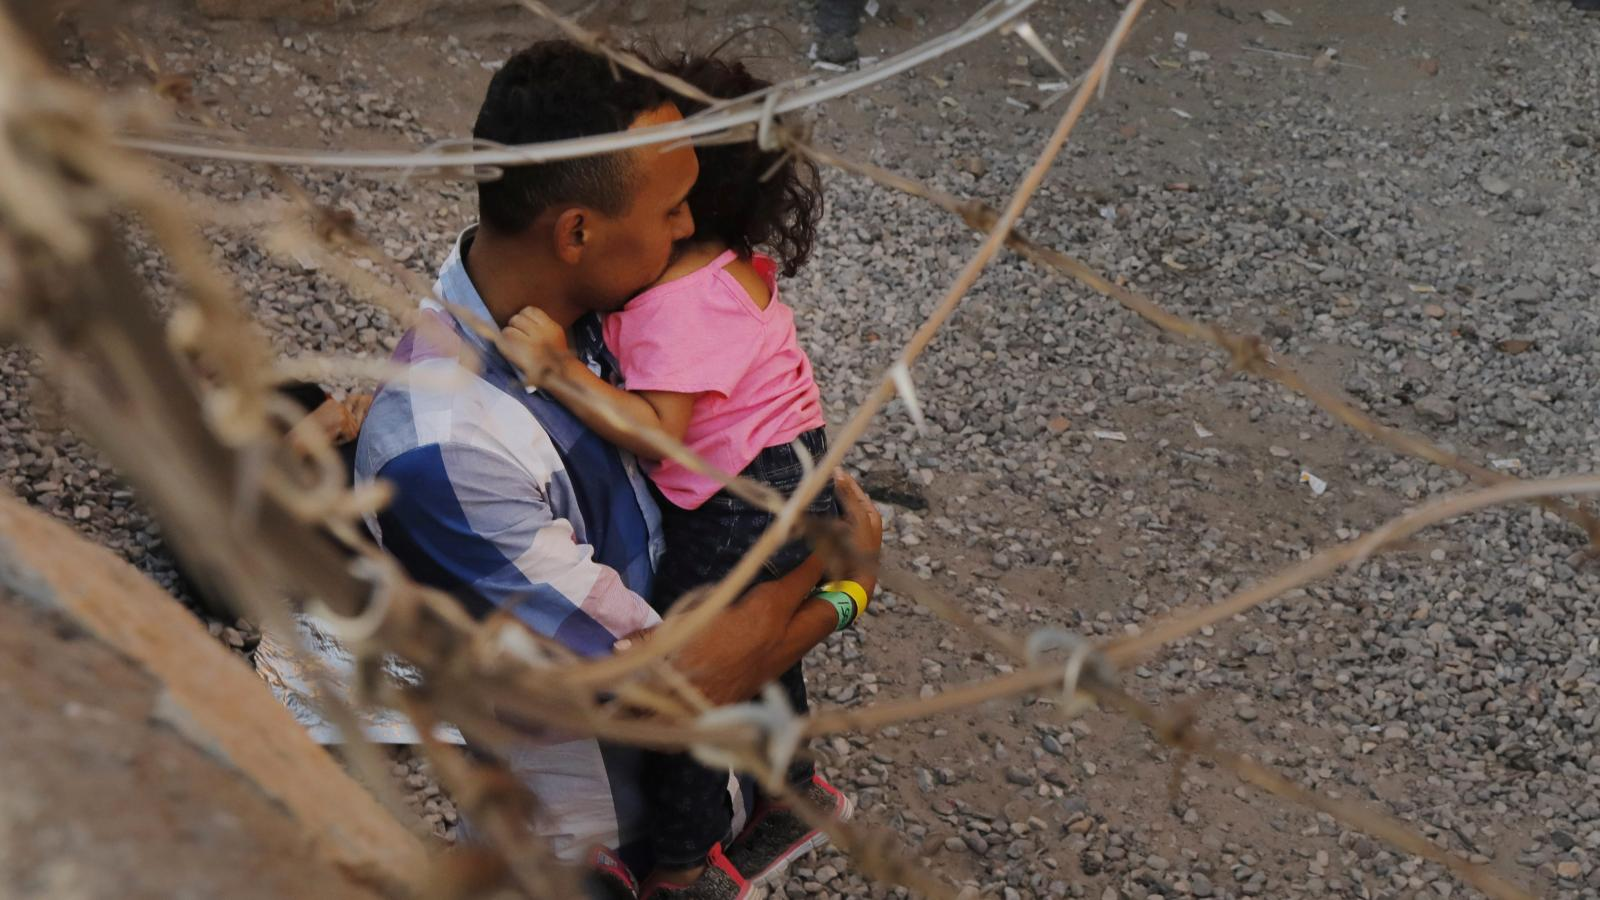 Majority in National Survey Against Separating Immigrant Families At US/Mexico Border